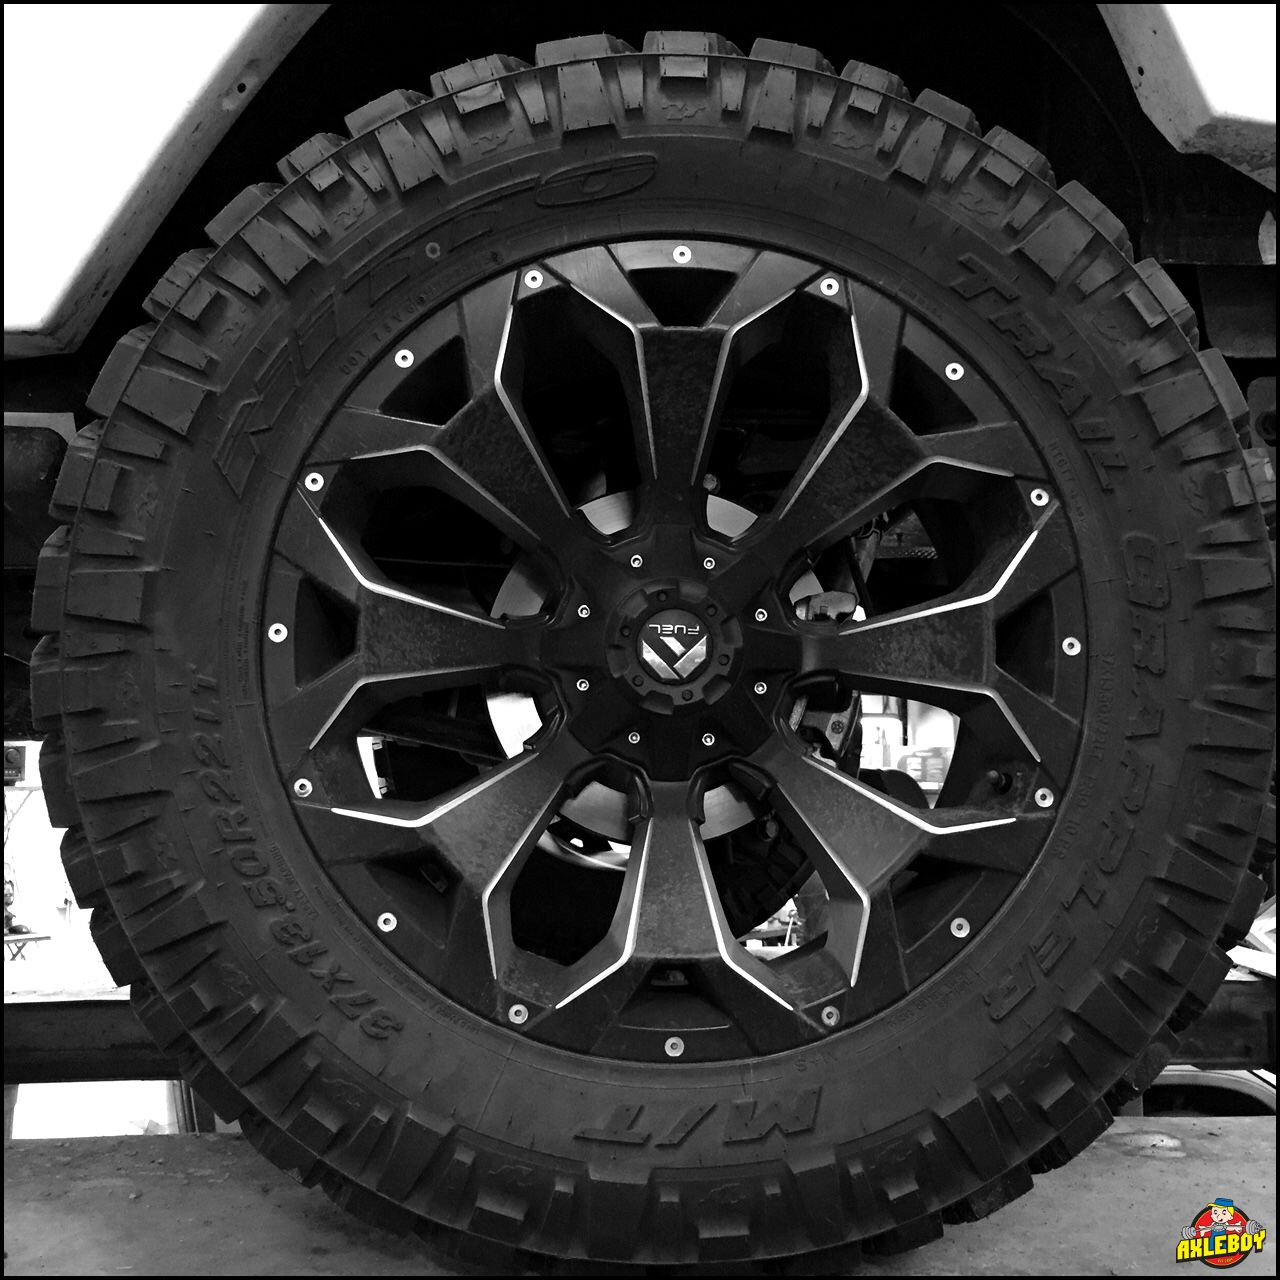 37x13 50r22 Nitto Trail Grappler Tire On A Fuel Wheel Axl Jeep Wheels Fuel Wheels Truck Rims And Tires